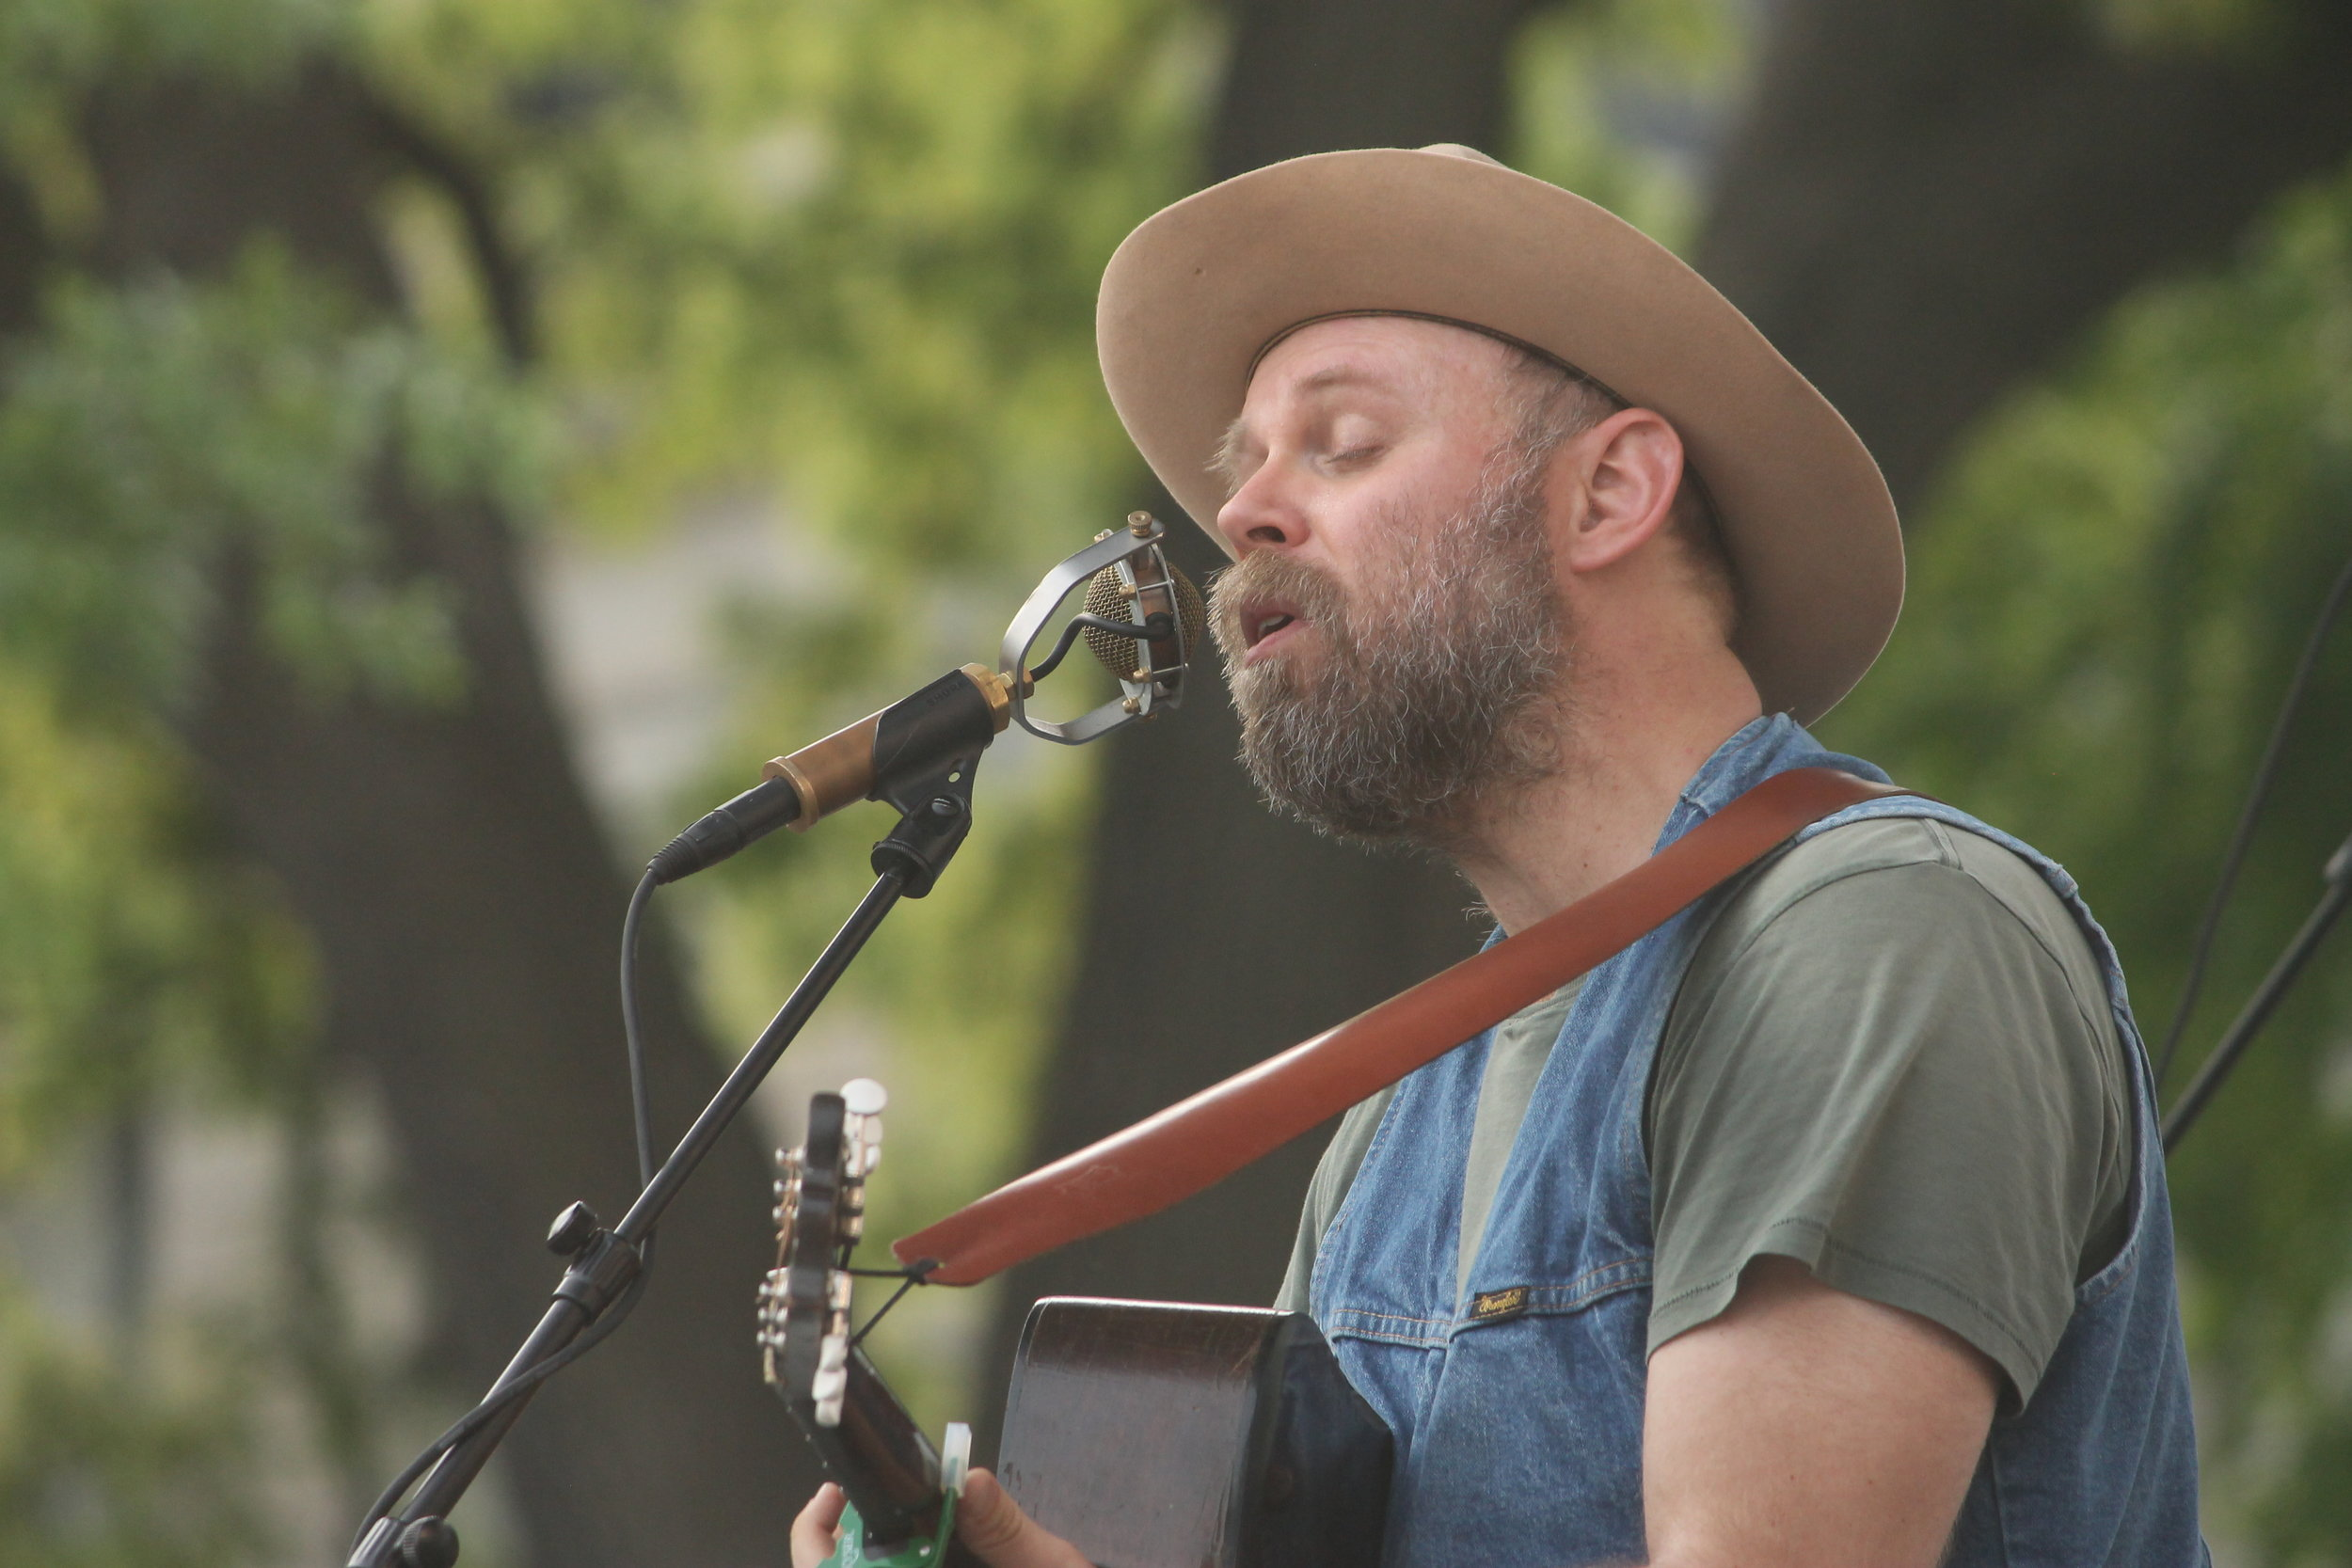 Justin Ringle of Horse Feathers. Photo by Lauren Arzbaecher